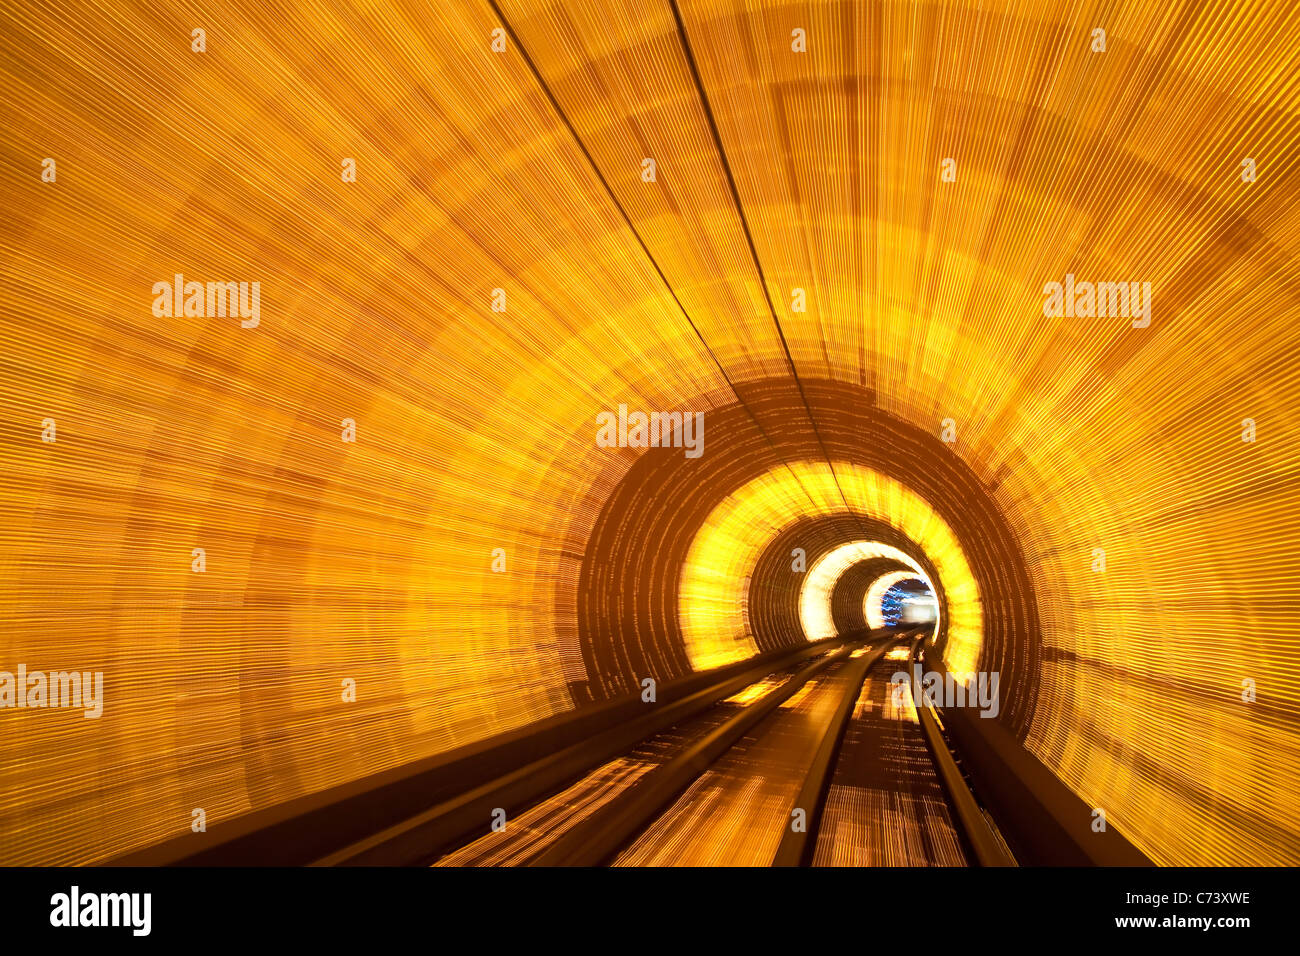 Blurred motion light trails in an train tunnel under the Huangpu tiver linking the Bund to Pudong, Shanghai, China Stock Photo